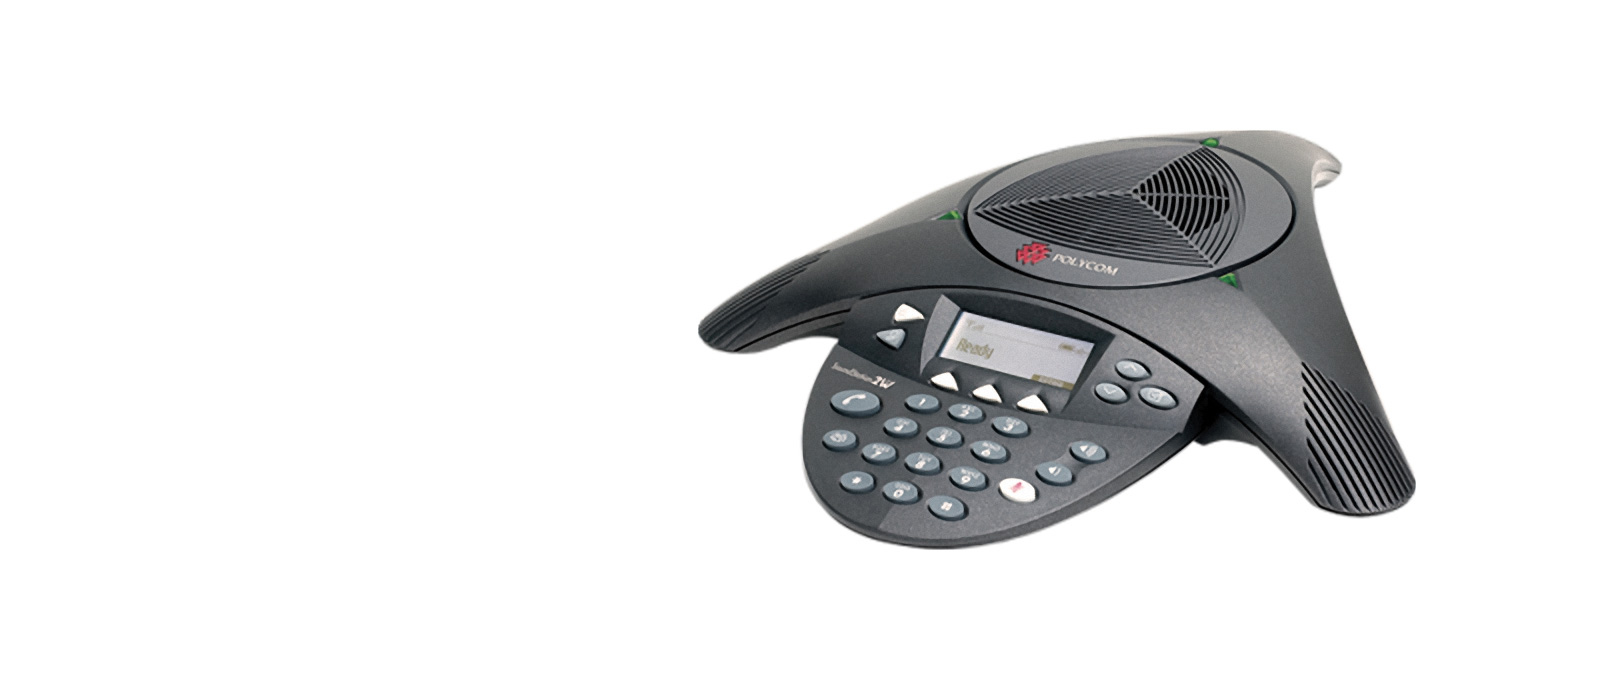 Kонферентен телефон Polycom SoundStation2 slider picture